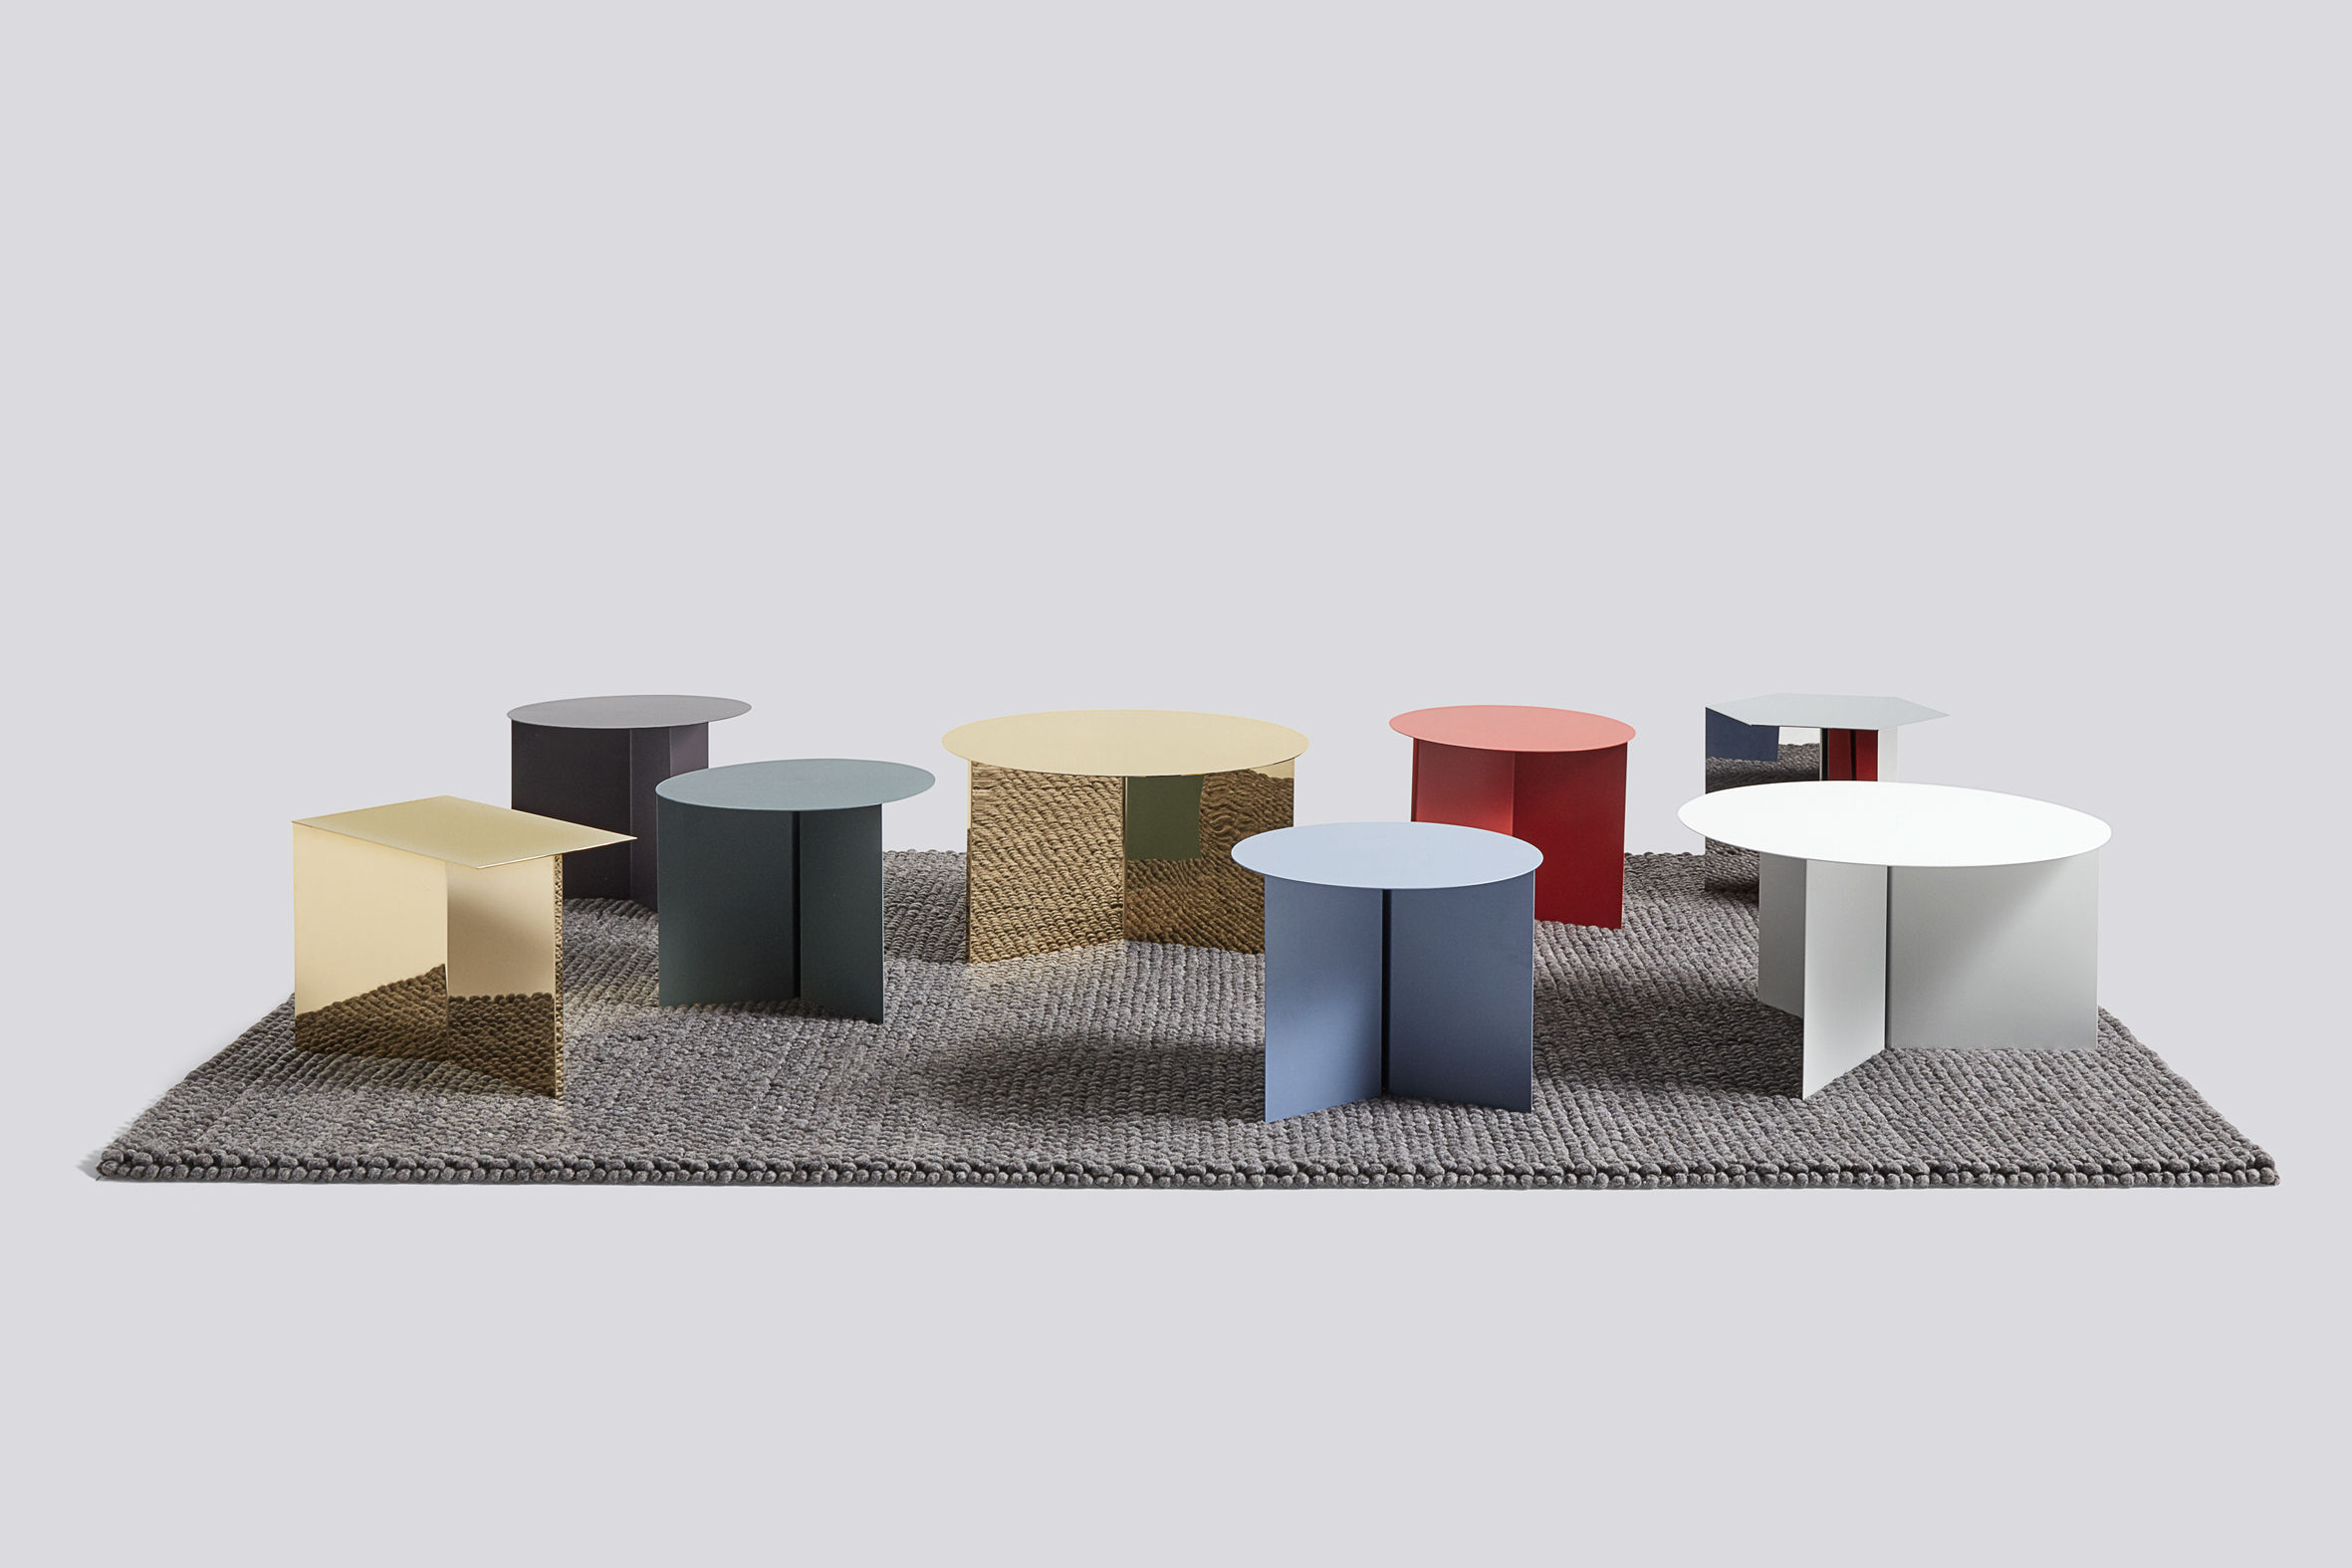 Table d 39 appoint slit hexagon 45 x 45 cm metallo laiton poli hay - Table d appoint malm ...